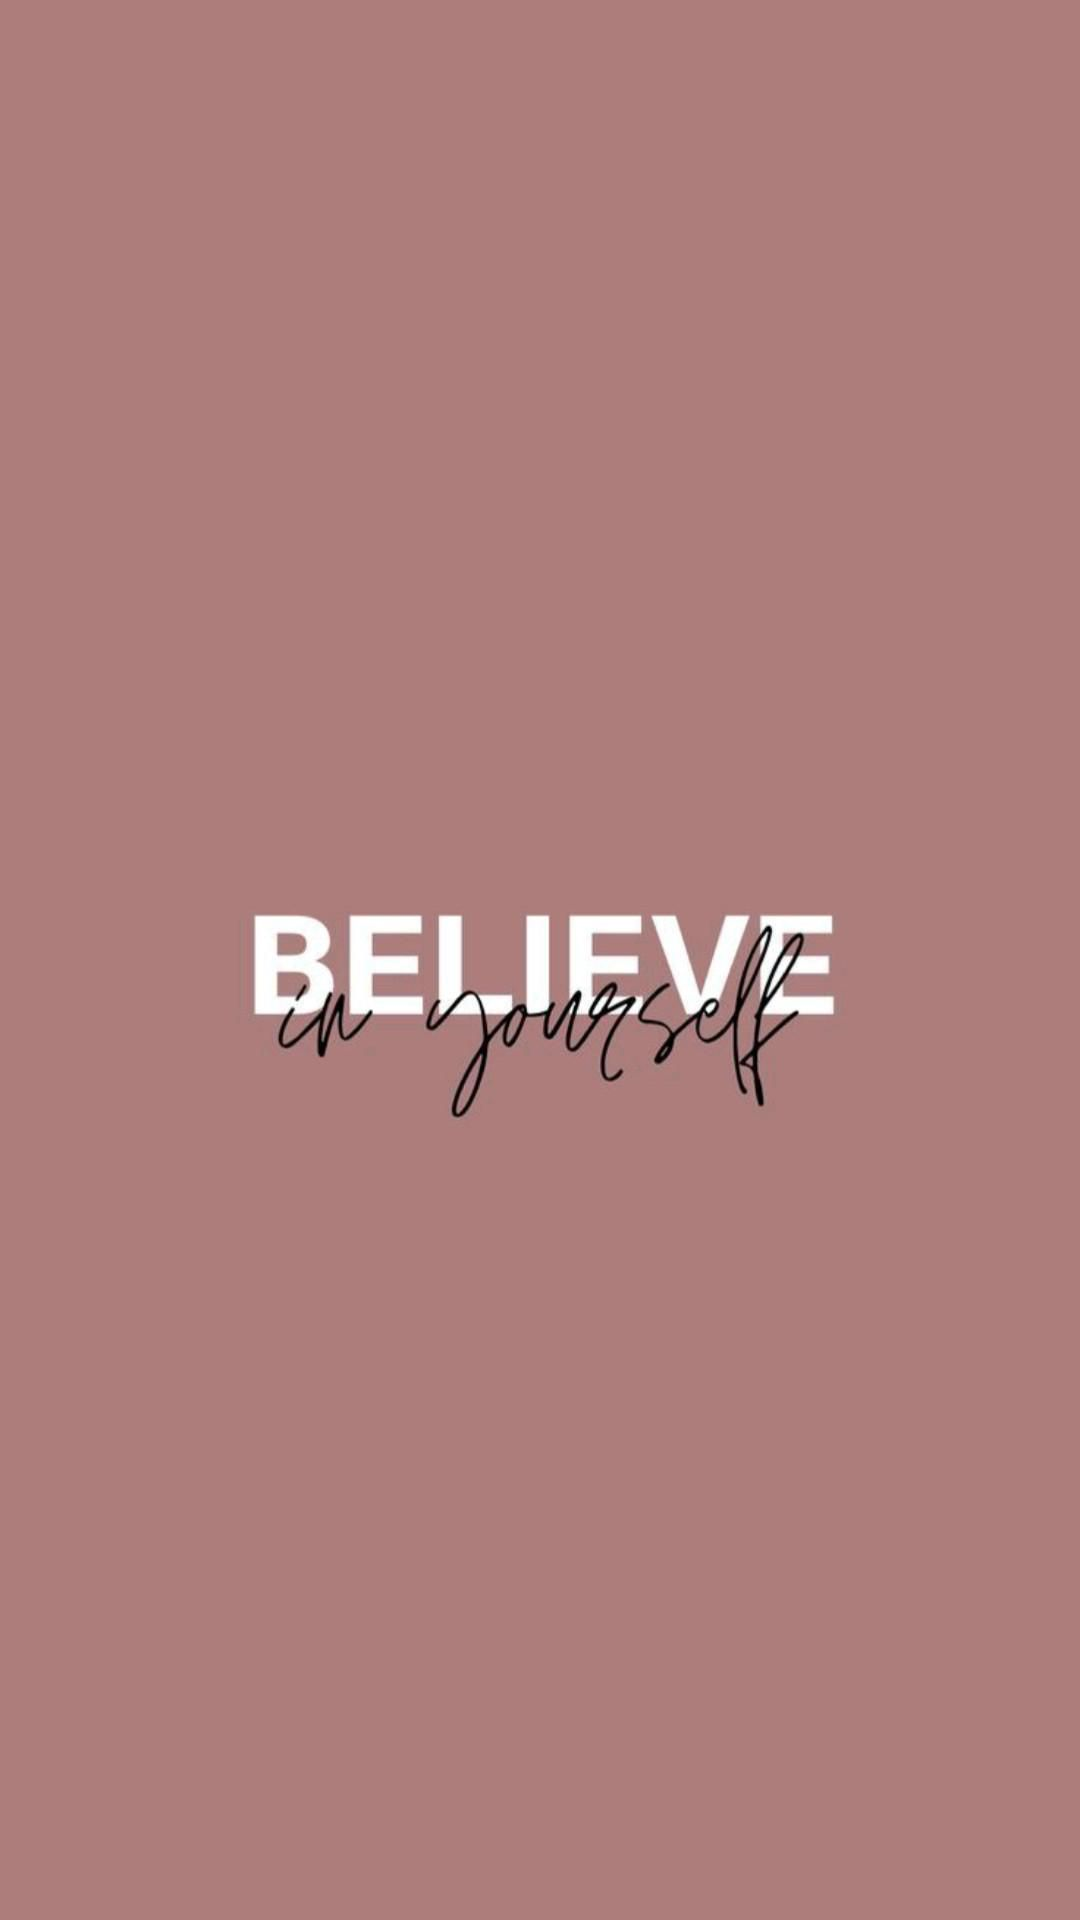 believe in yourself 🌺🌼❤️